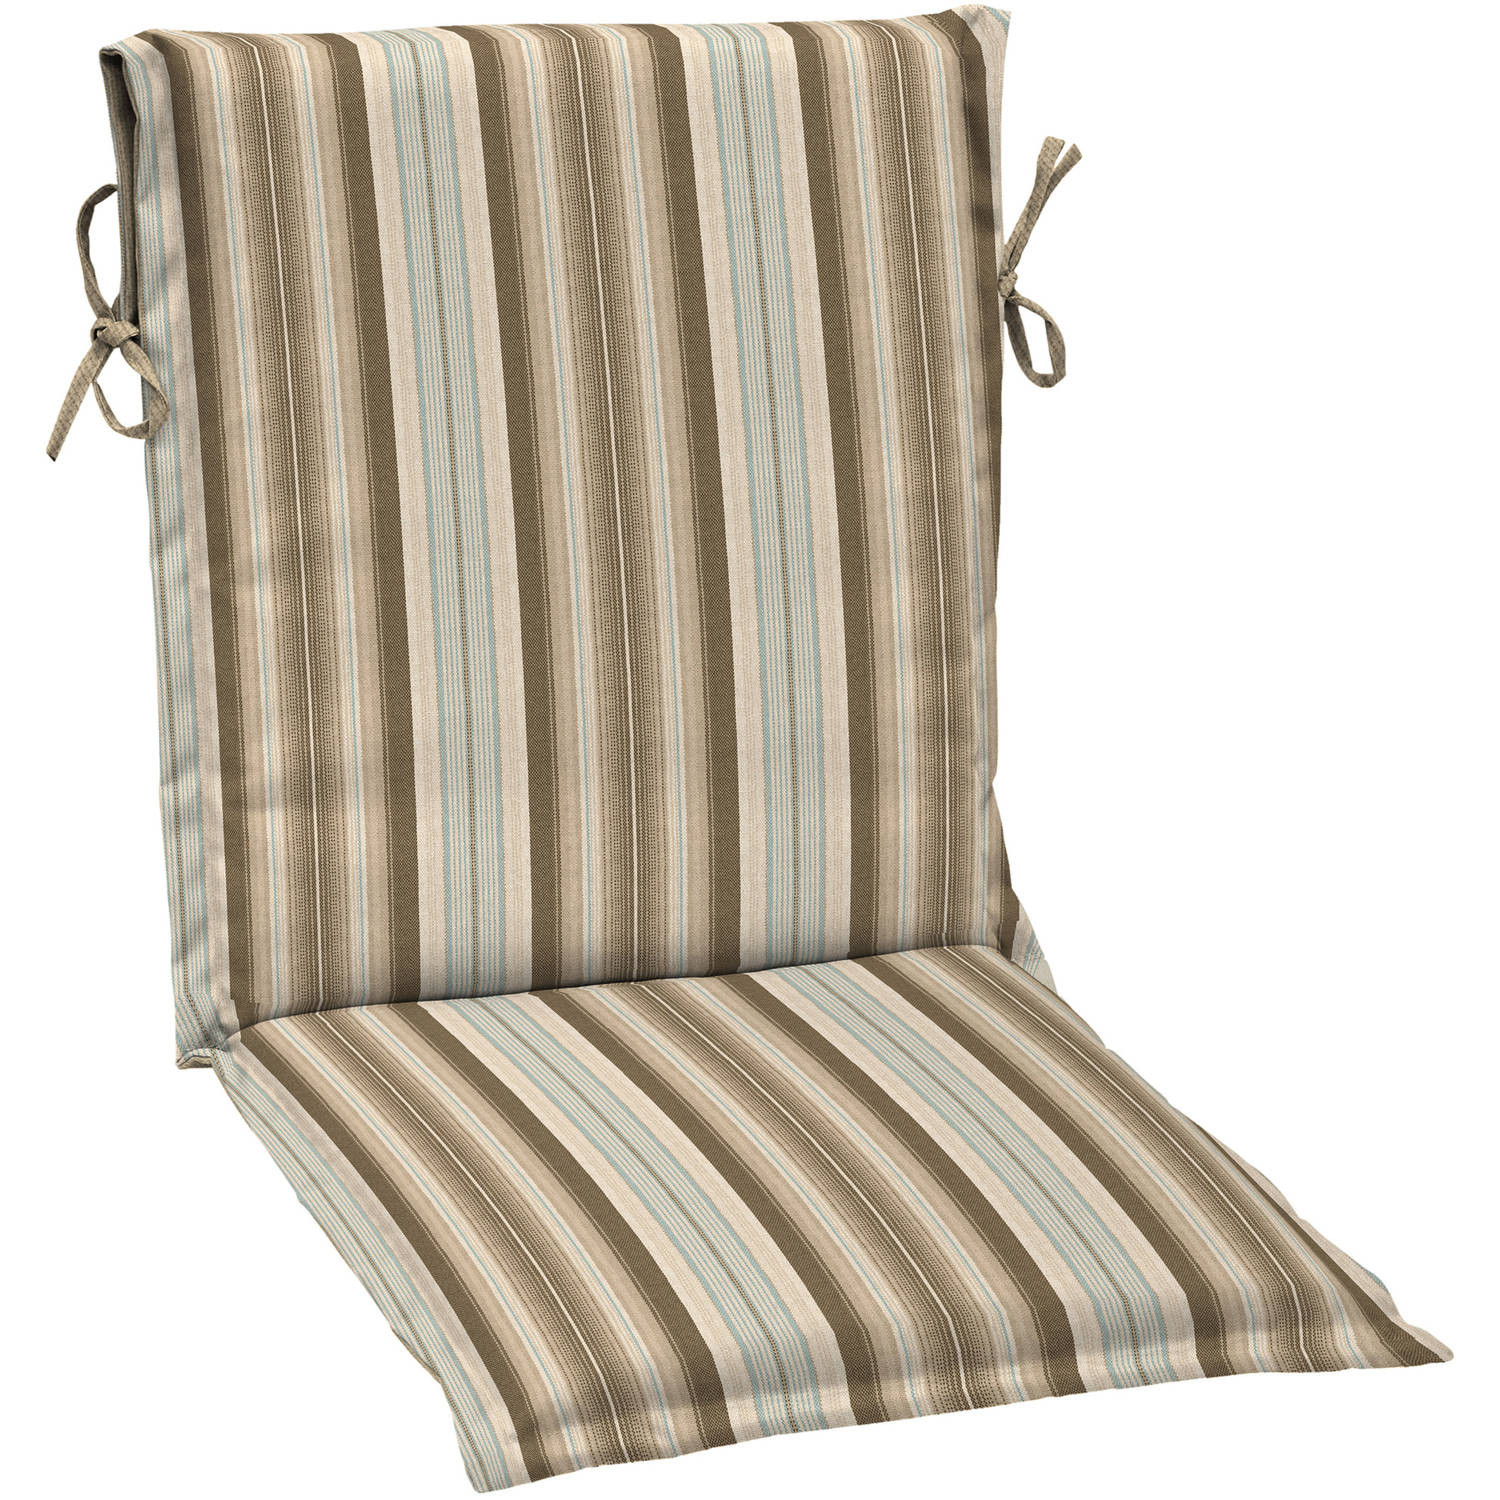 Best ideas about Outside Chair Cushions . Save or Pin Outdoor Chair Cushions Walmart Now.